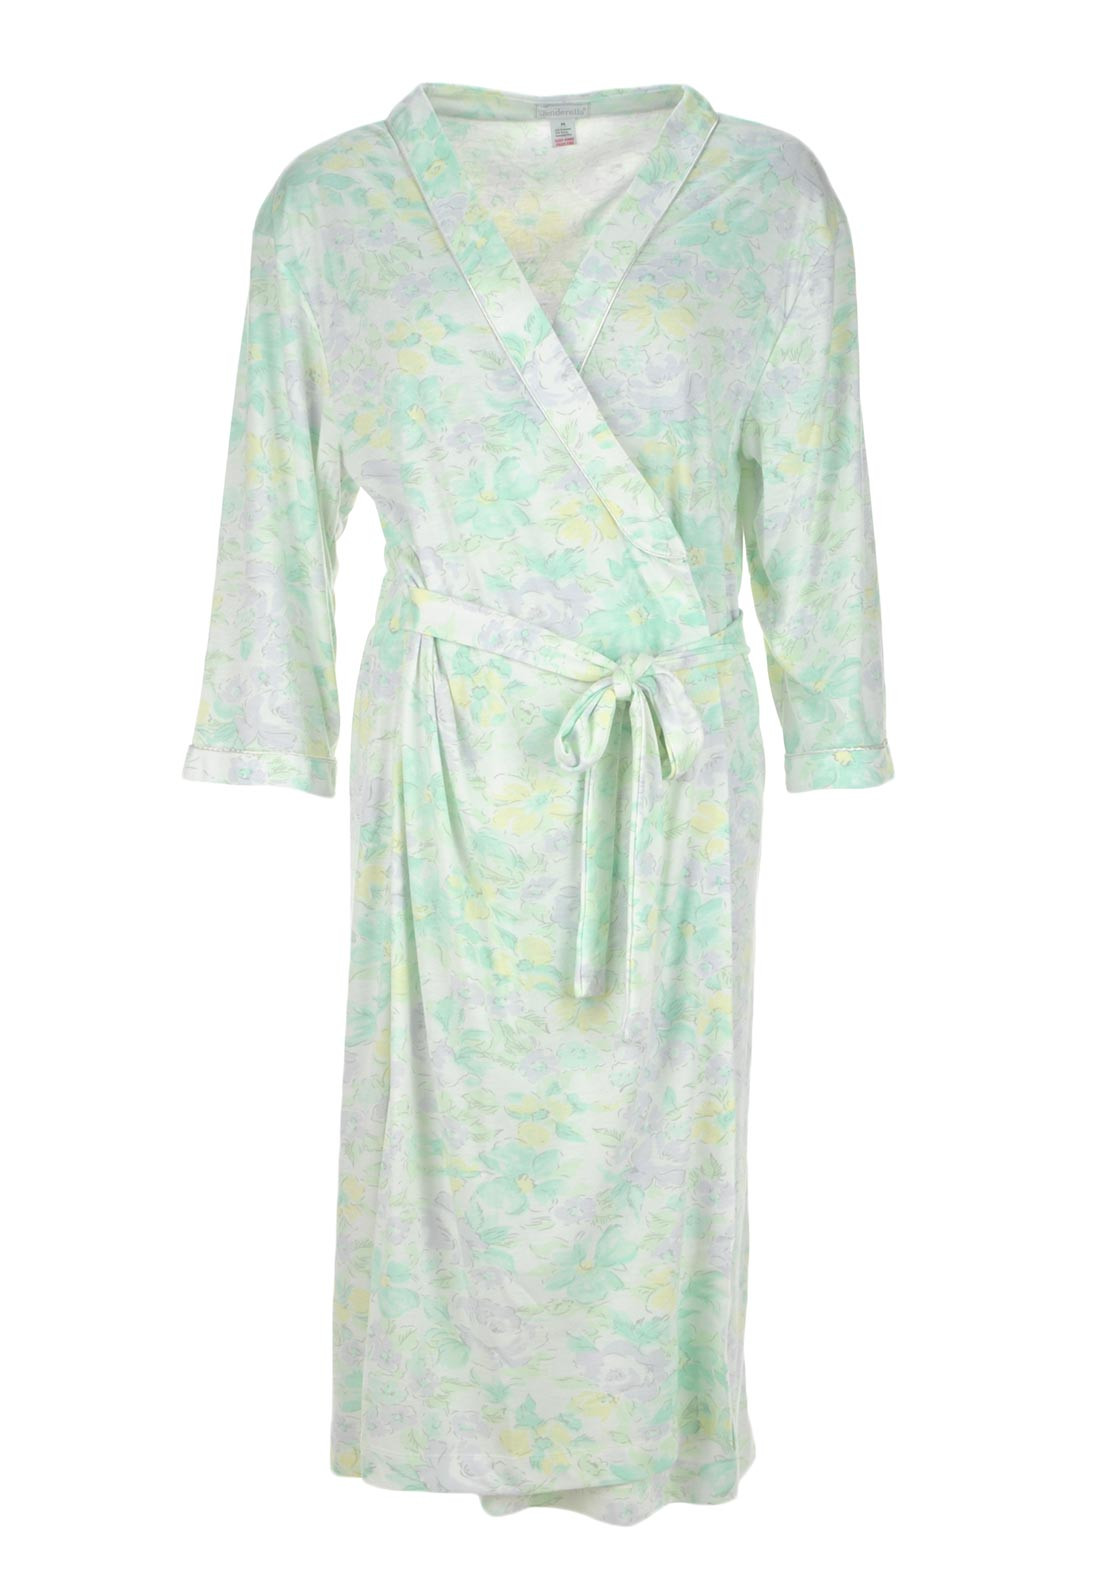 Slenderella Floral Print Dressing Gown, Mint Green Multi